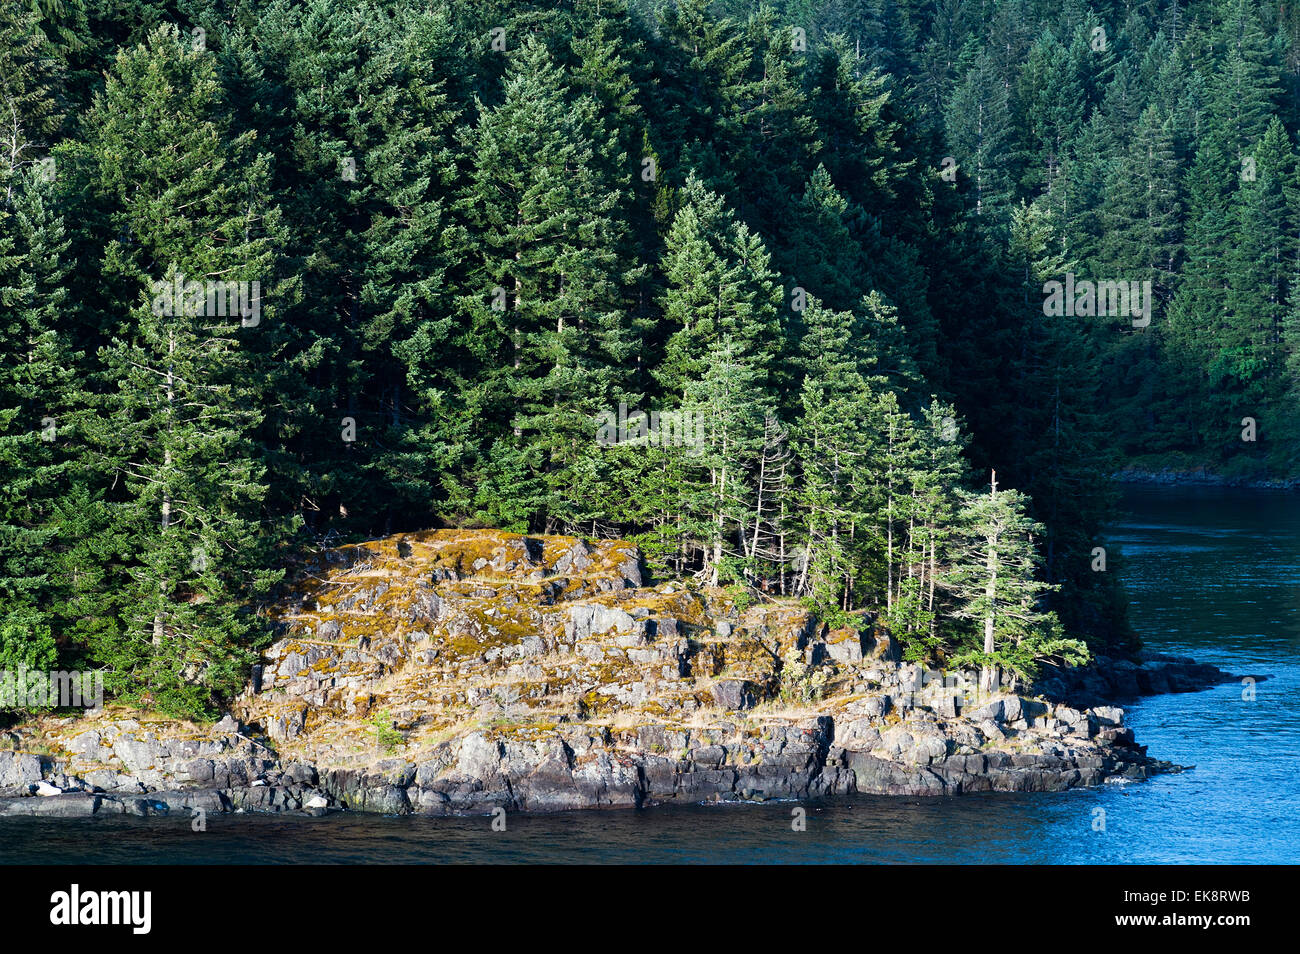 Canadian coast along the Inside Passage, British Columbia, Canada - Stock Image